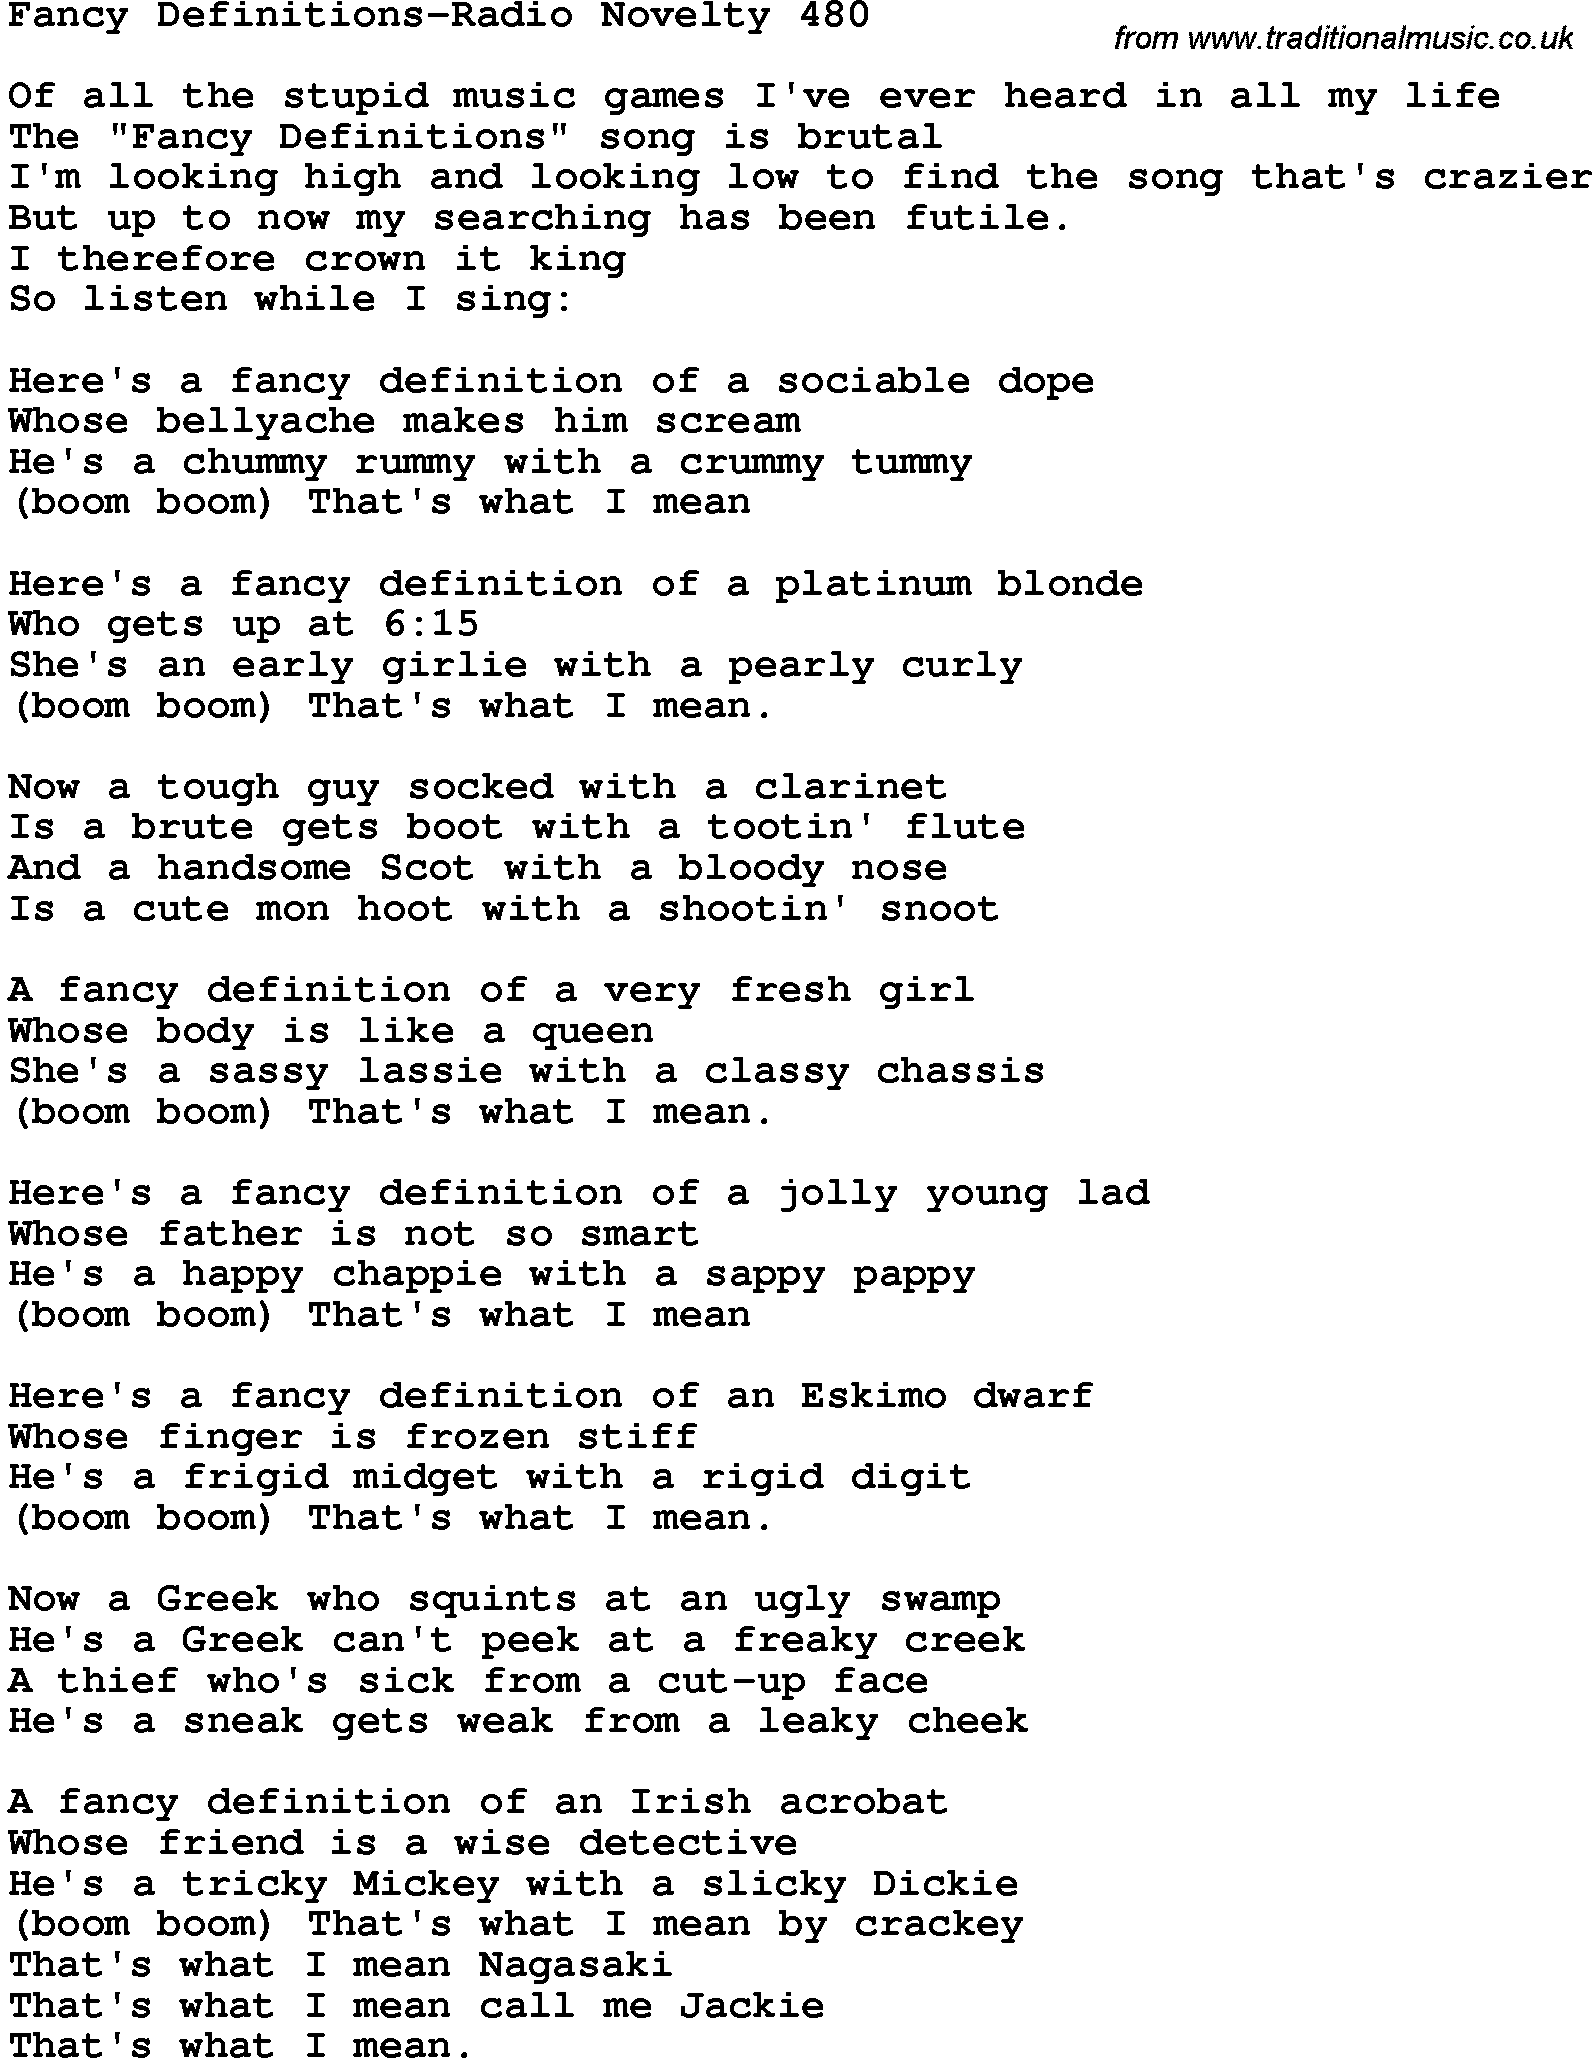 novelty song fancy definitions radio novelty 480 lyrics